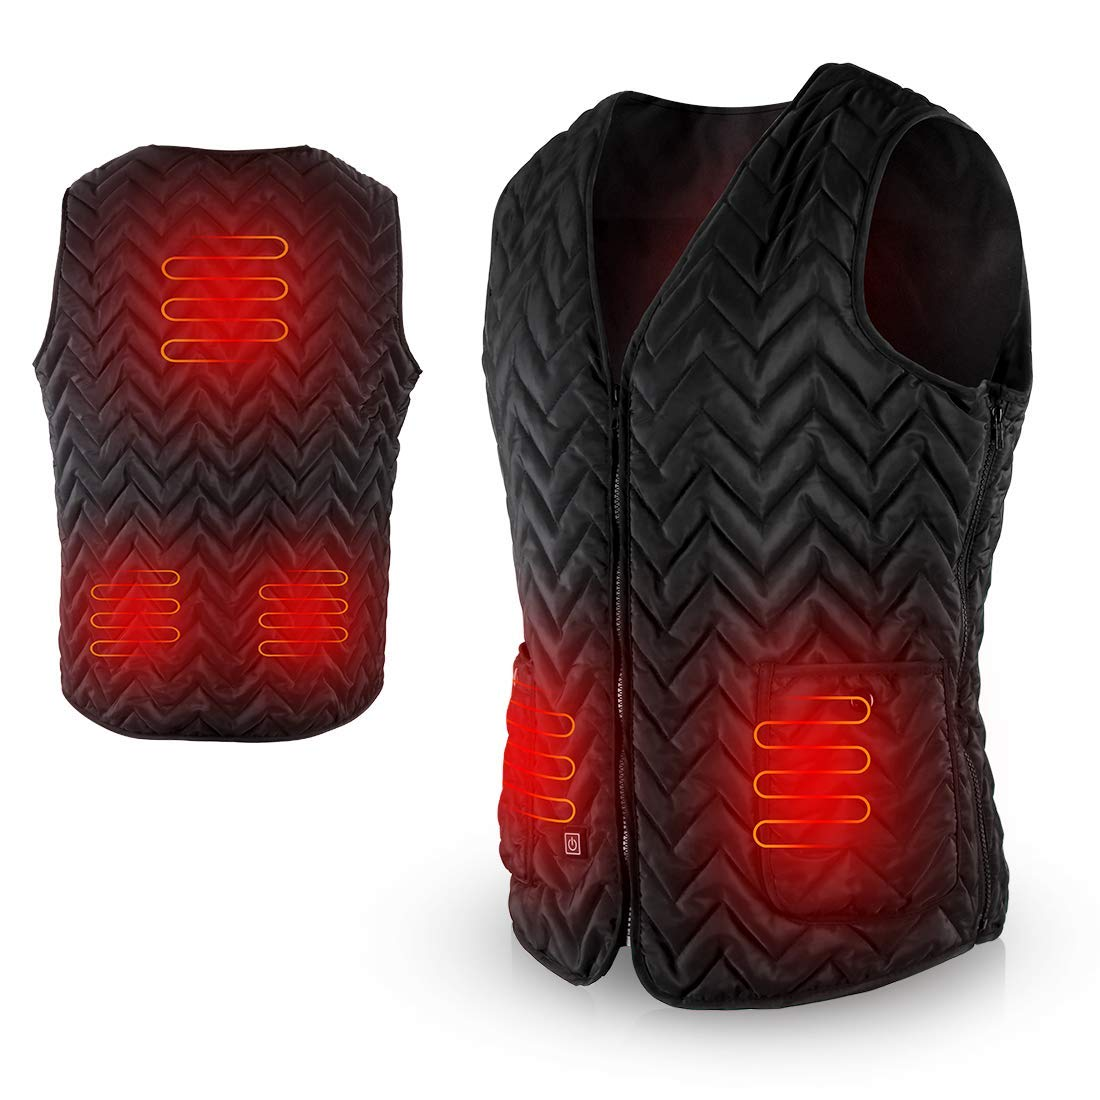 AGPtek Electric Heated Vest Adjustable 5V USB Warm Vest Unisex Vest for Outdoor Mountaineering, Camping, Hiking (L Size)